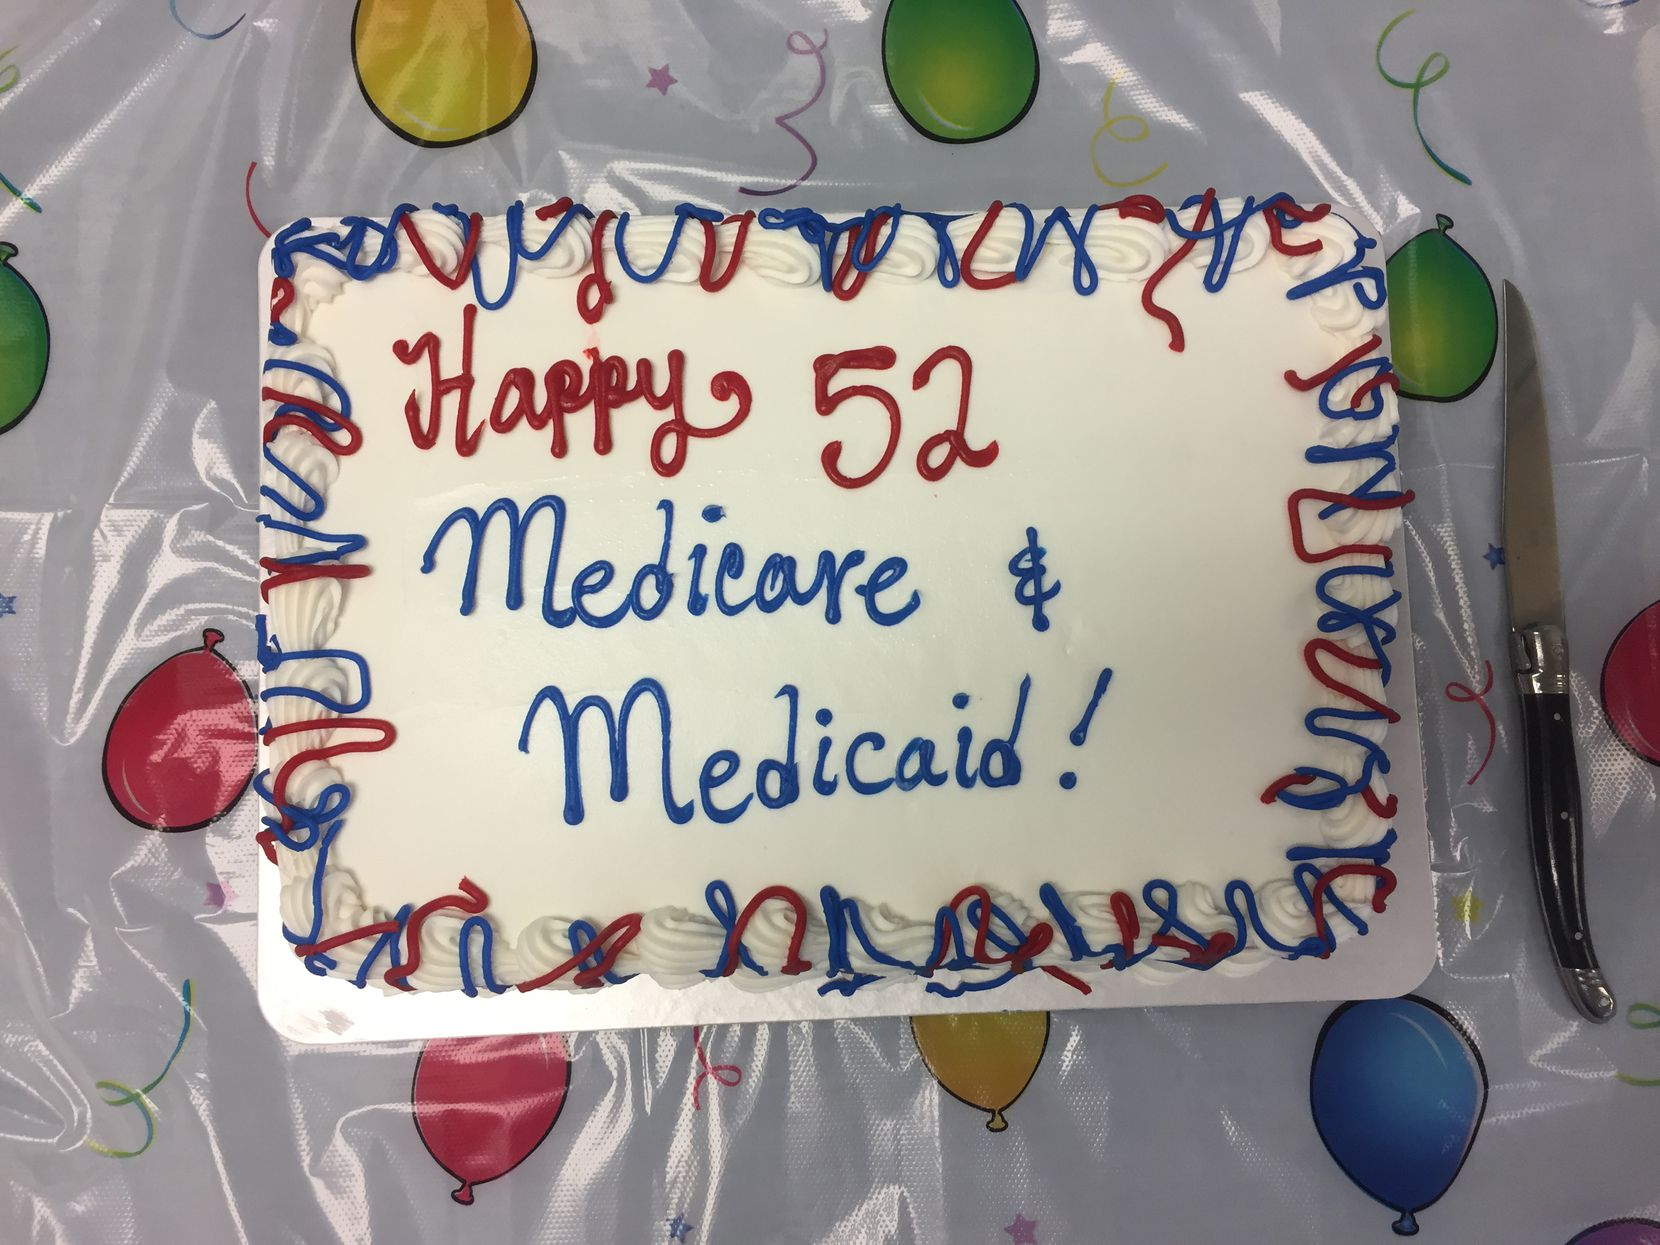 A birthday cake for Medicare and Medicaid sits on a table at the meeting of the Texas Alliance for Retired Americans on Wednesday.